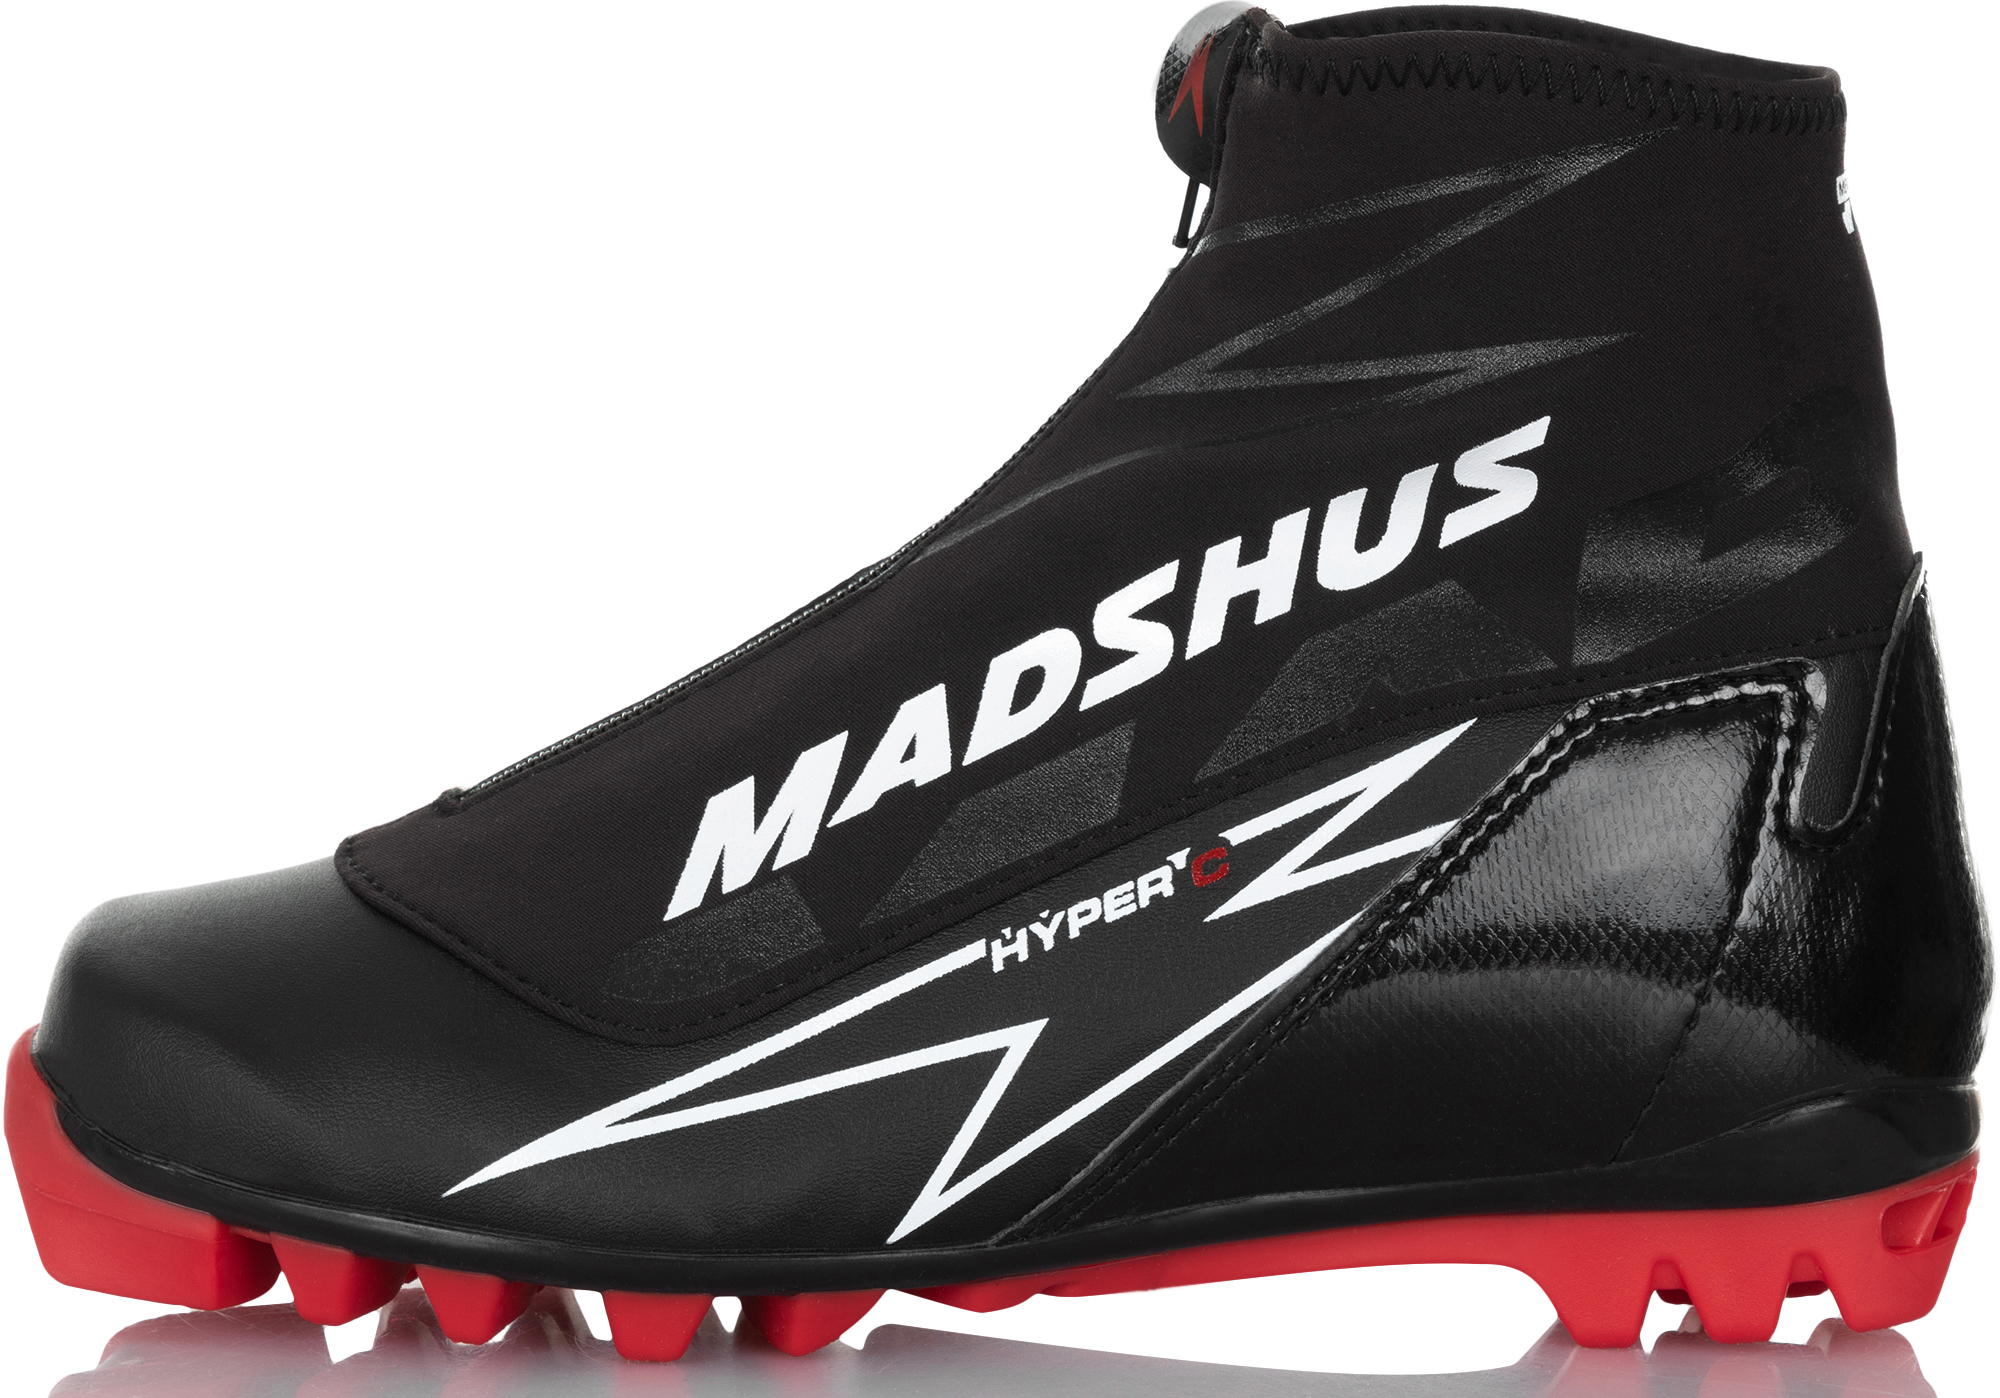 Madshus HYPER C Adult cross-country ski boots